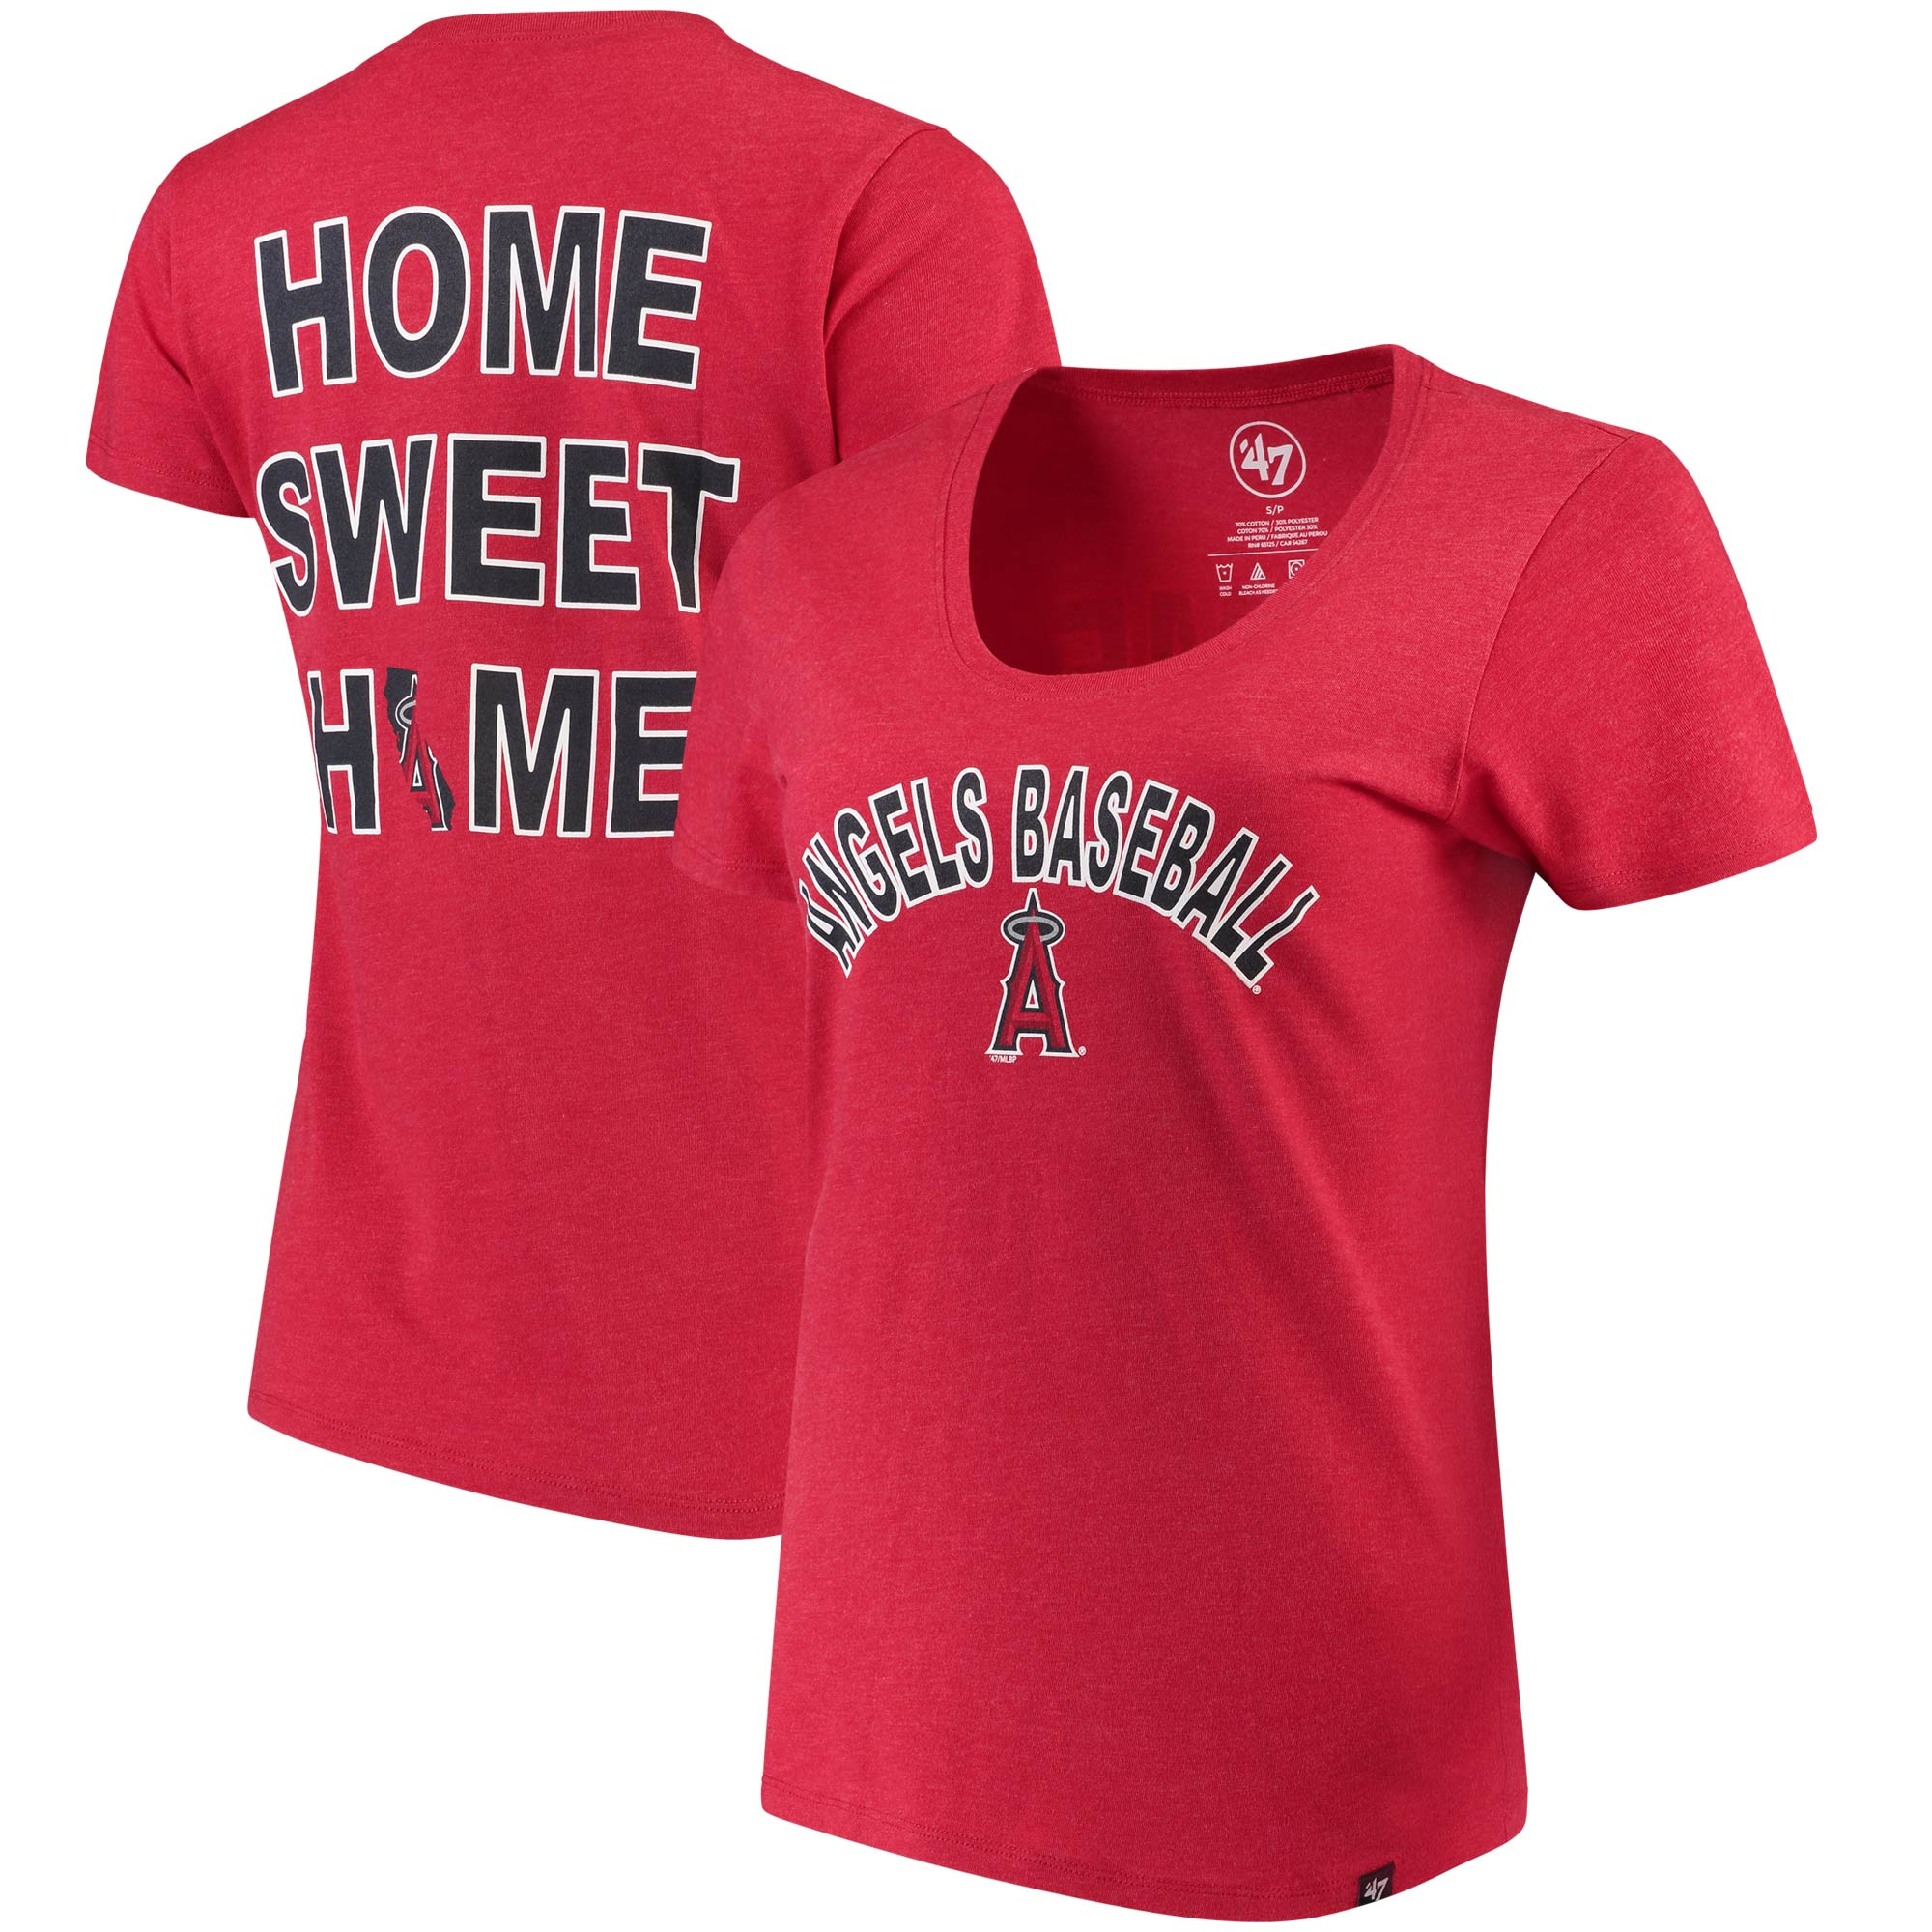 Los Angeles Angels '47 Women's Club Scoop Neck T-Shirt - Red